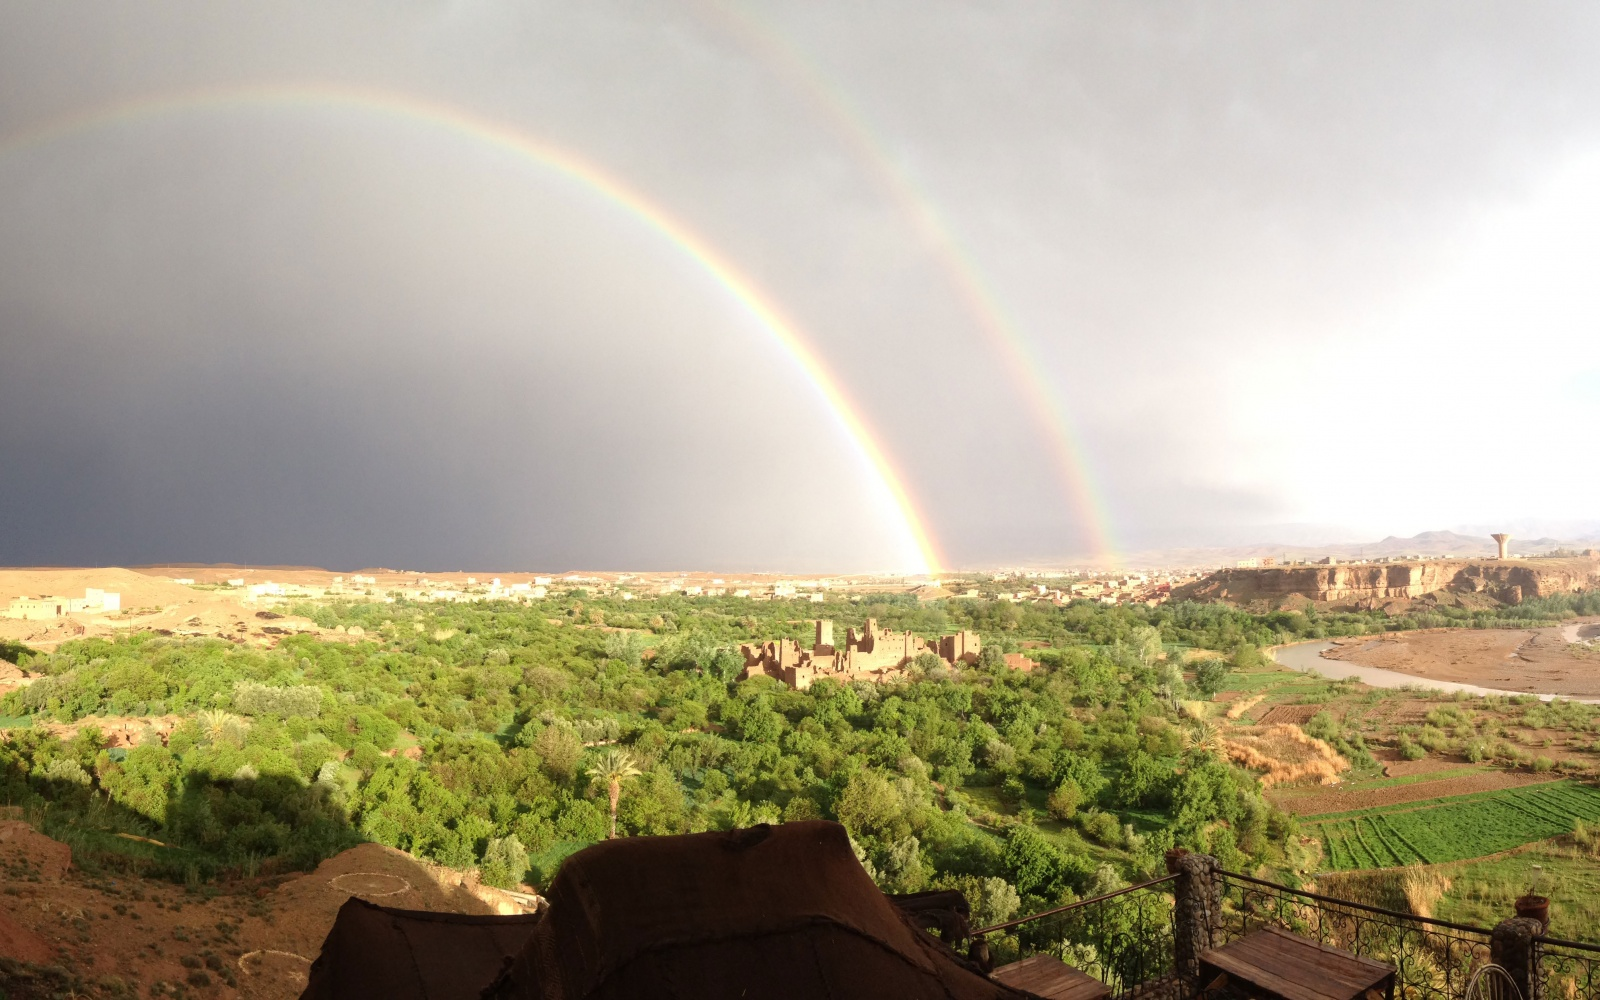 MOROCCO0515-Scenic-with-Rainbow.jpg